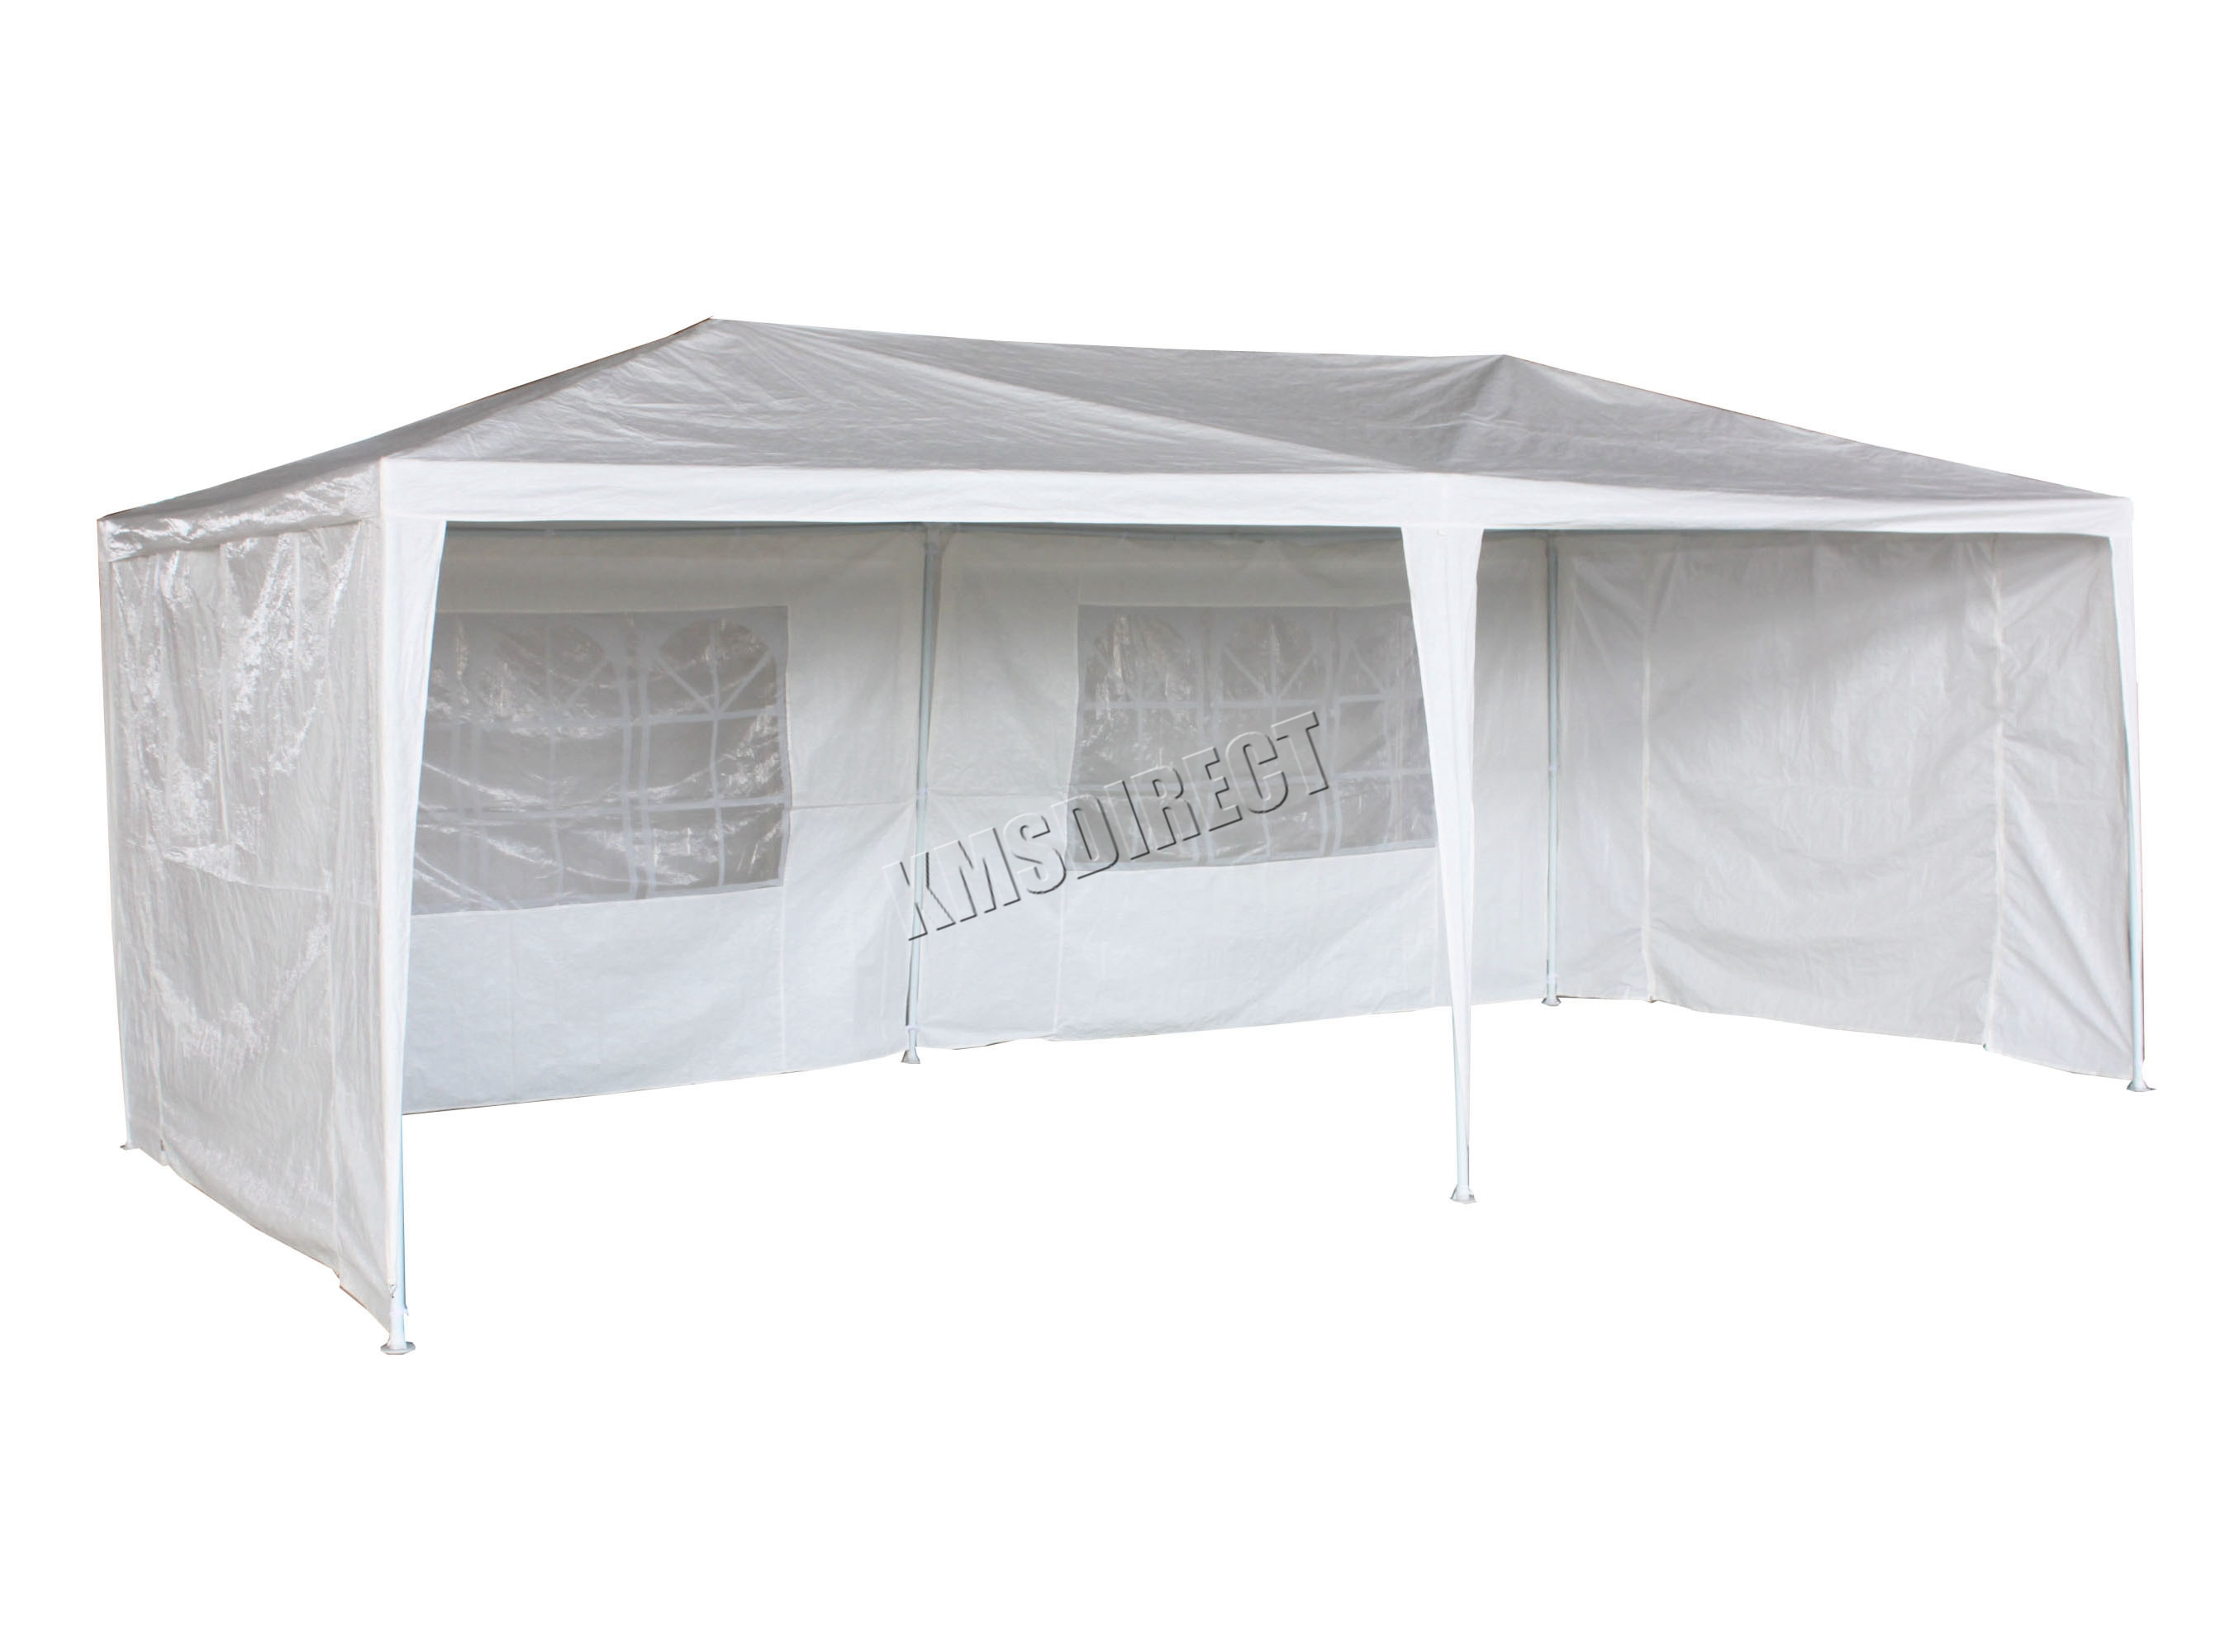 New Waterproof 3m x 6m PE Outdoor Garden Gazebo Party Tent Marquee ...